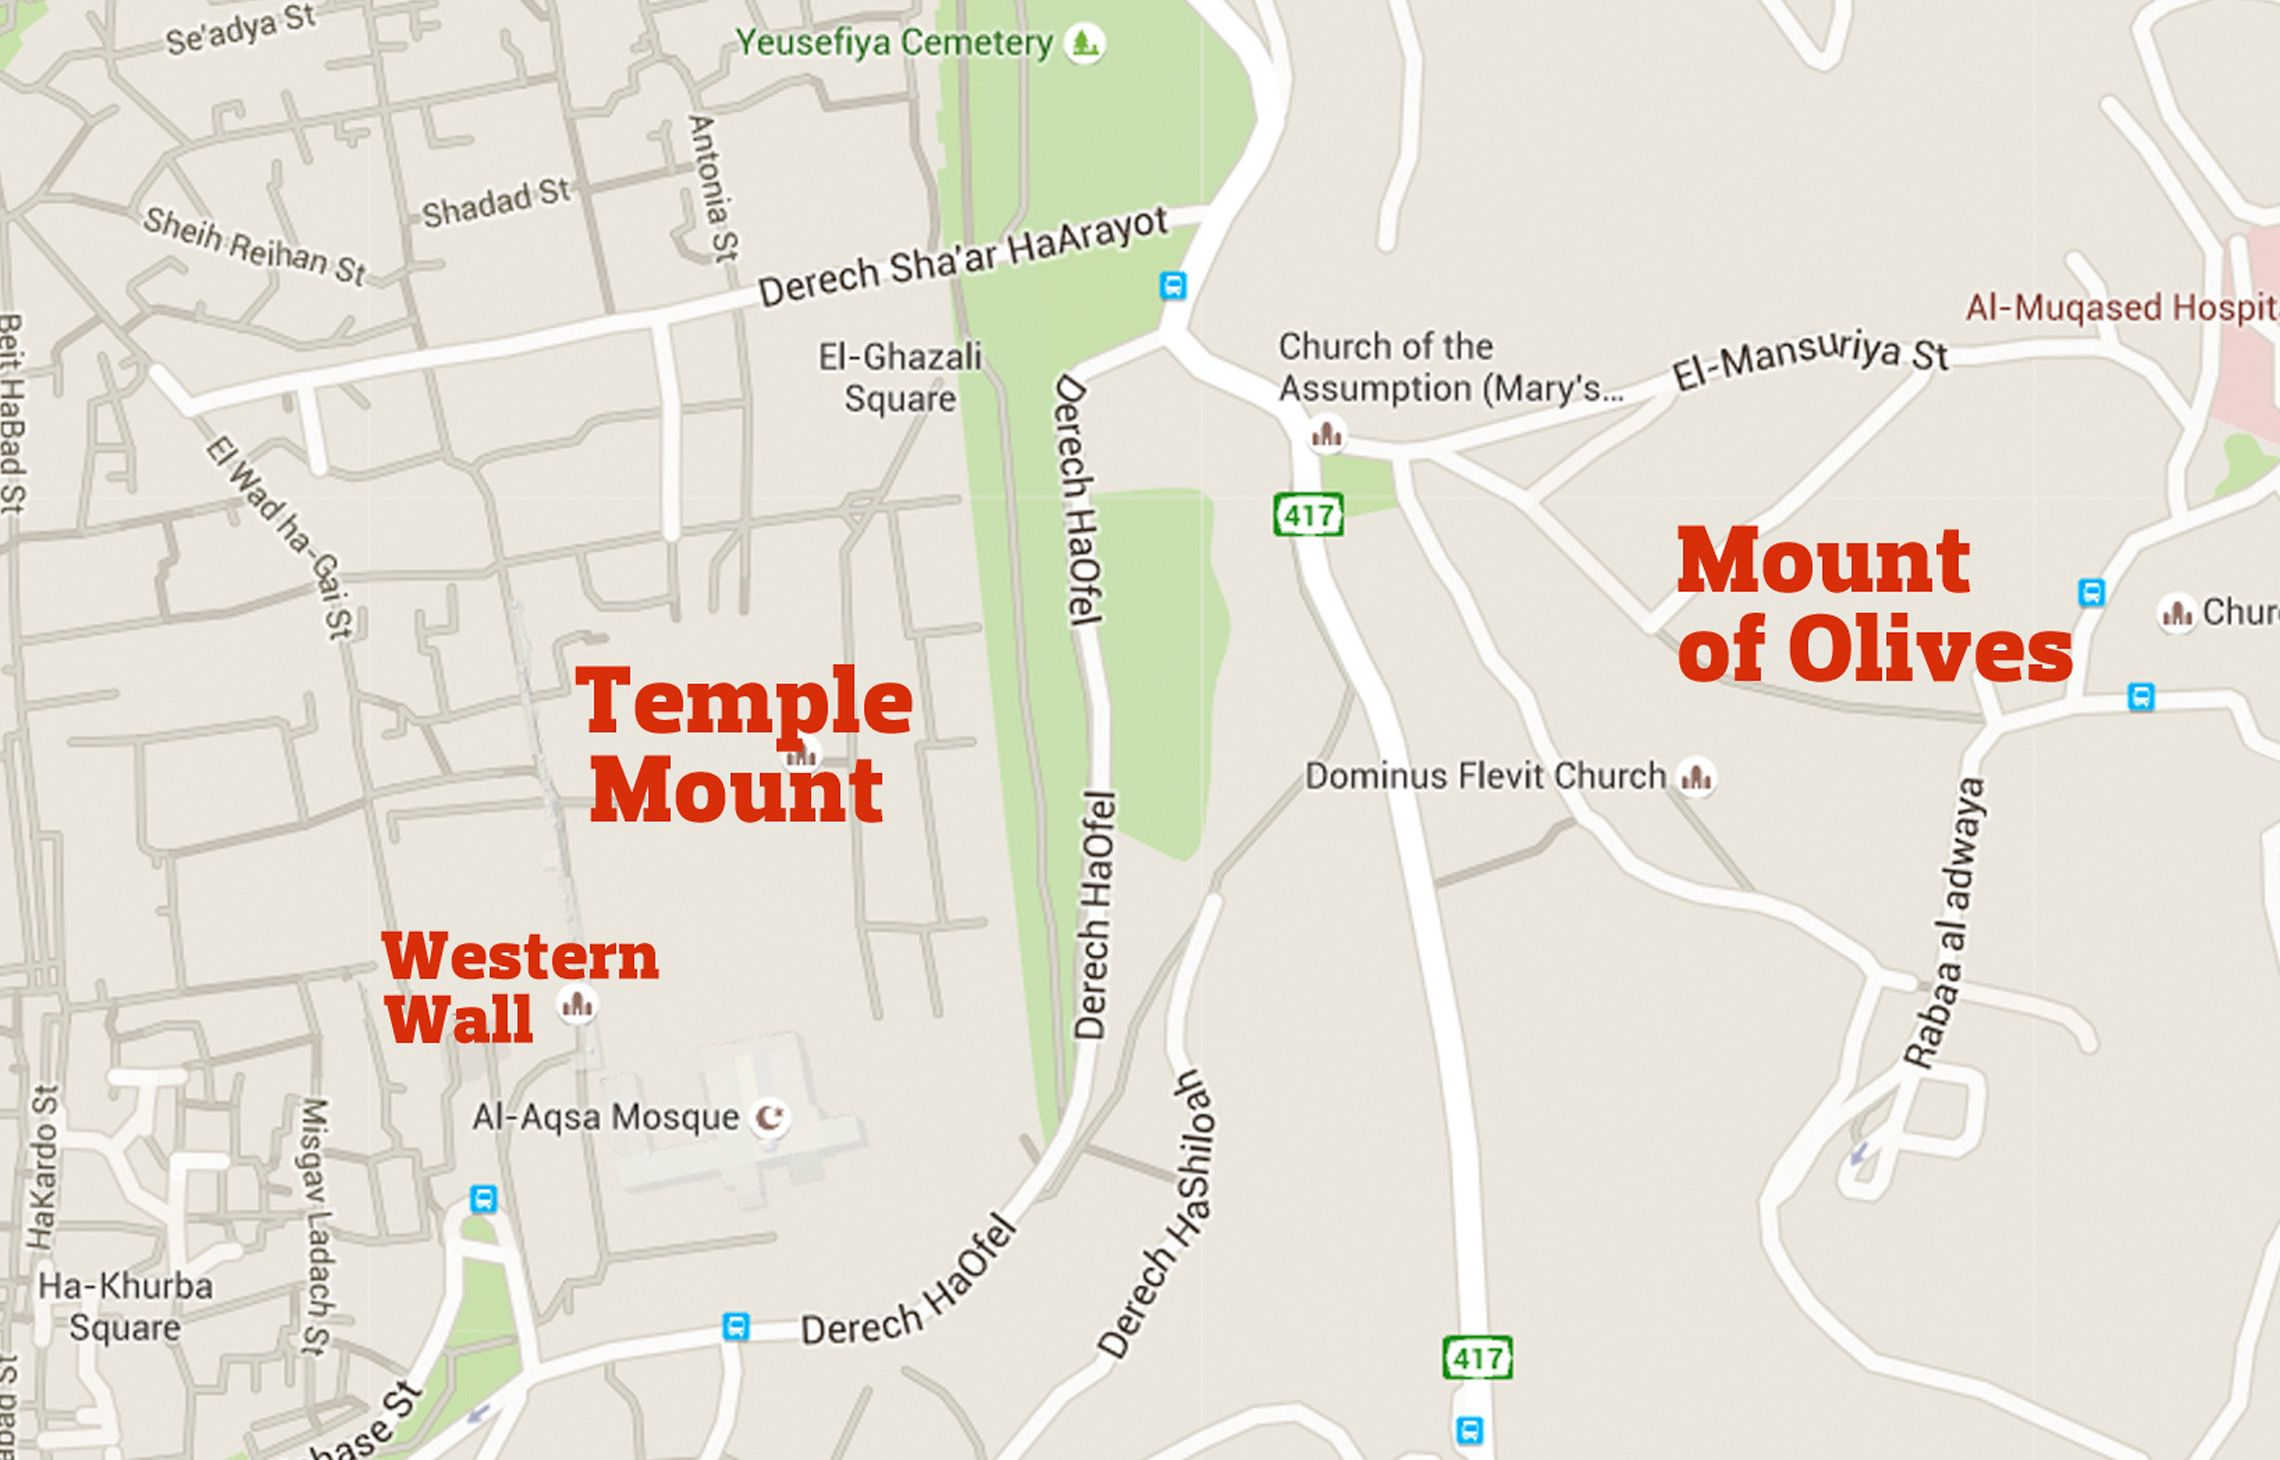 Temple Mount Revival Movement Revels in Crowd-Funded Passover ...